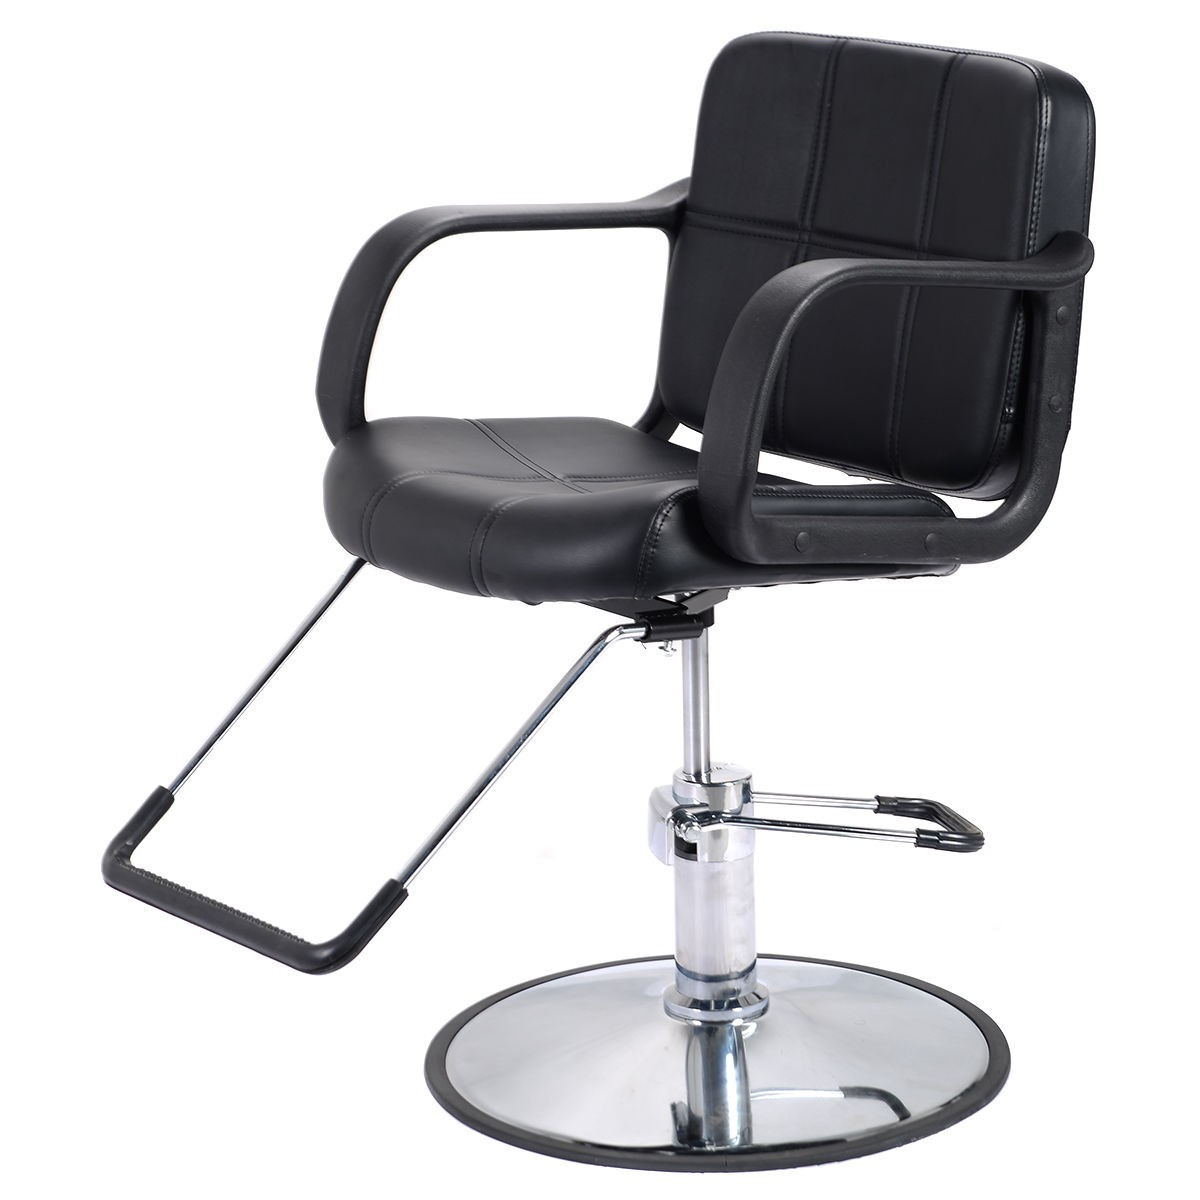 hydraulic hair styling chairs oversized chair new barber salon beauty spa